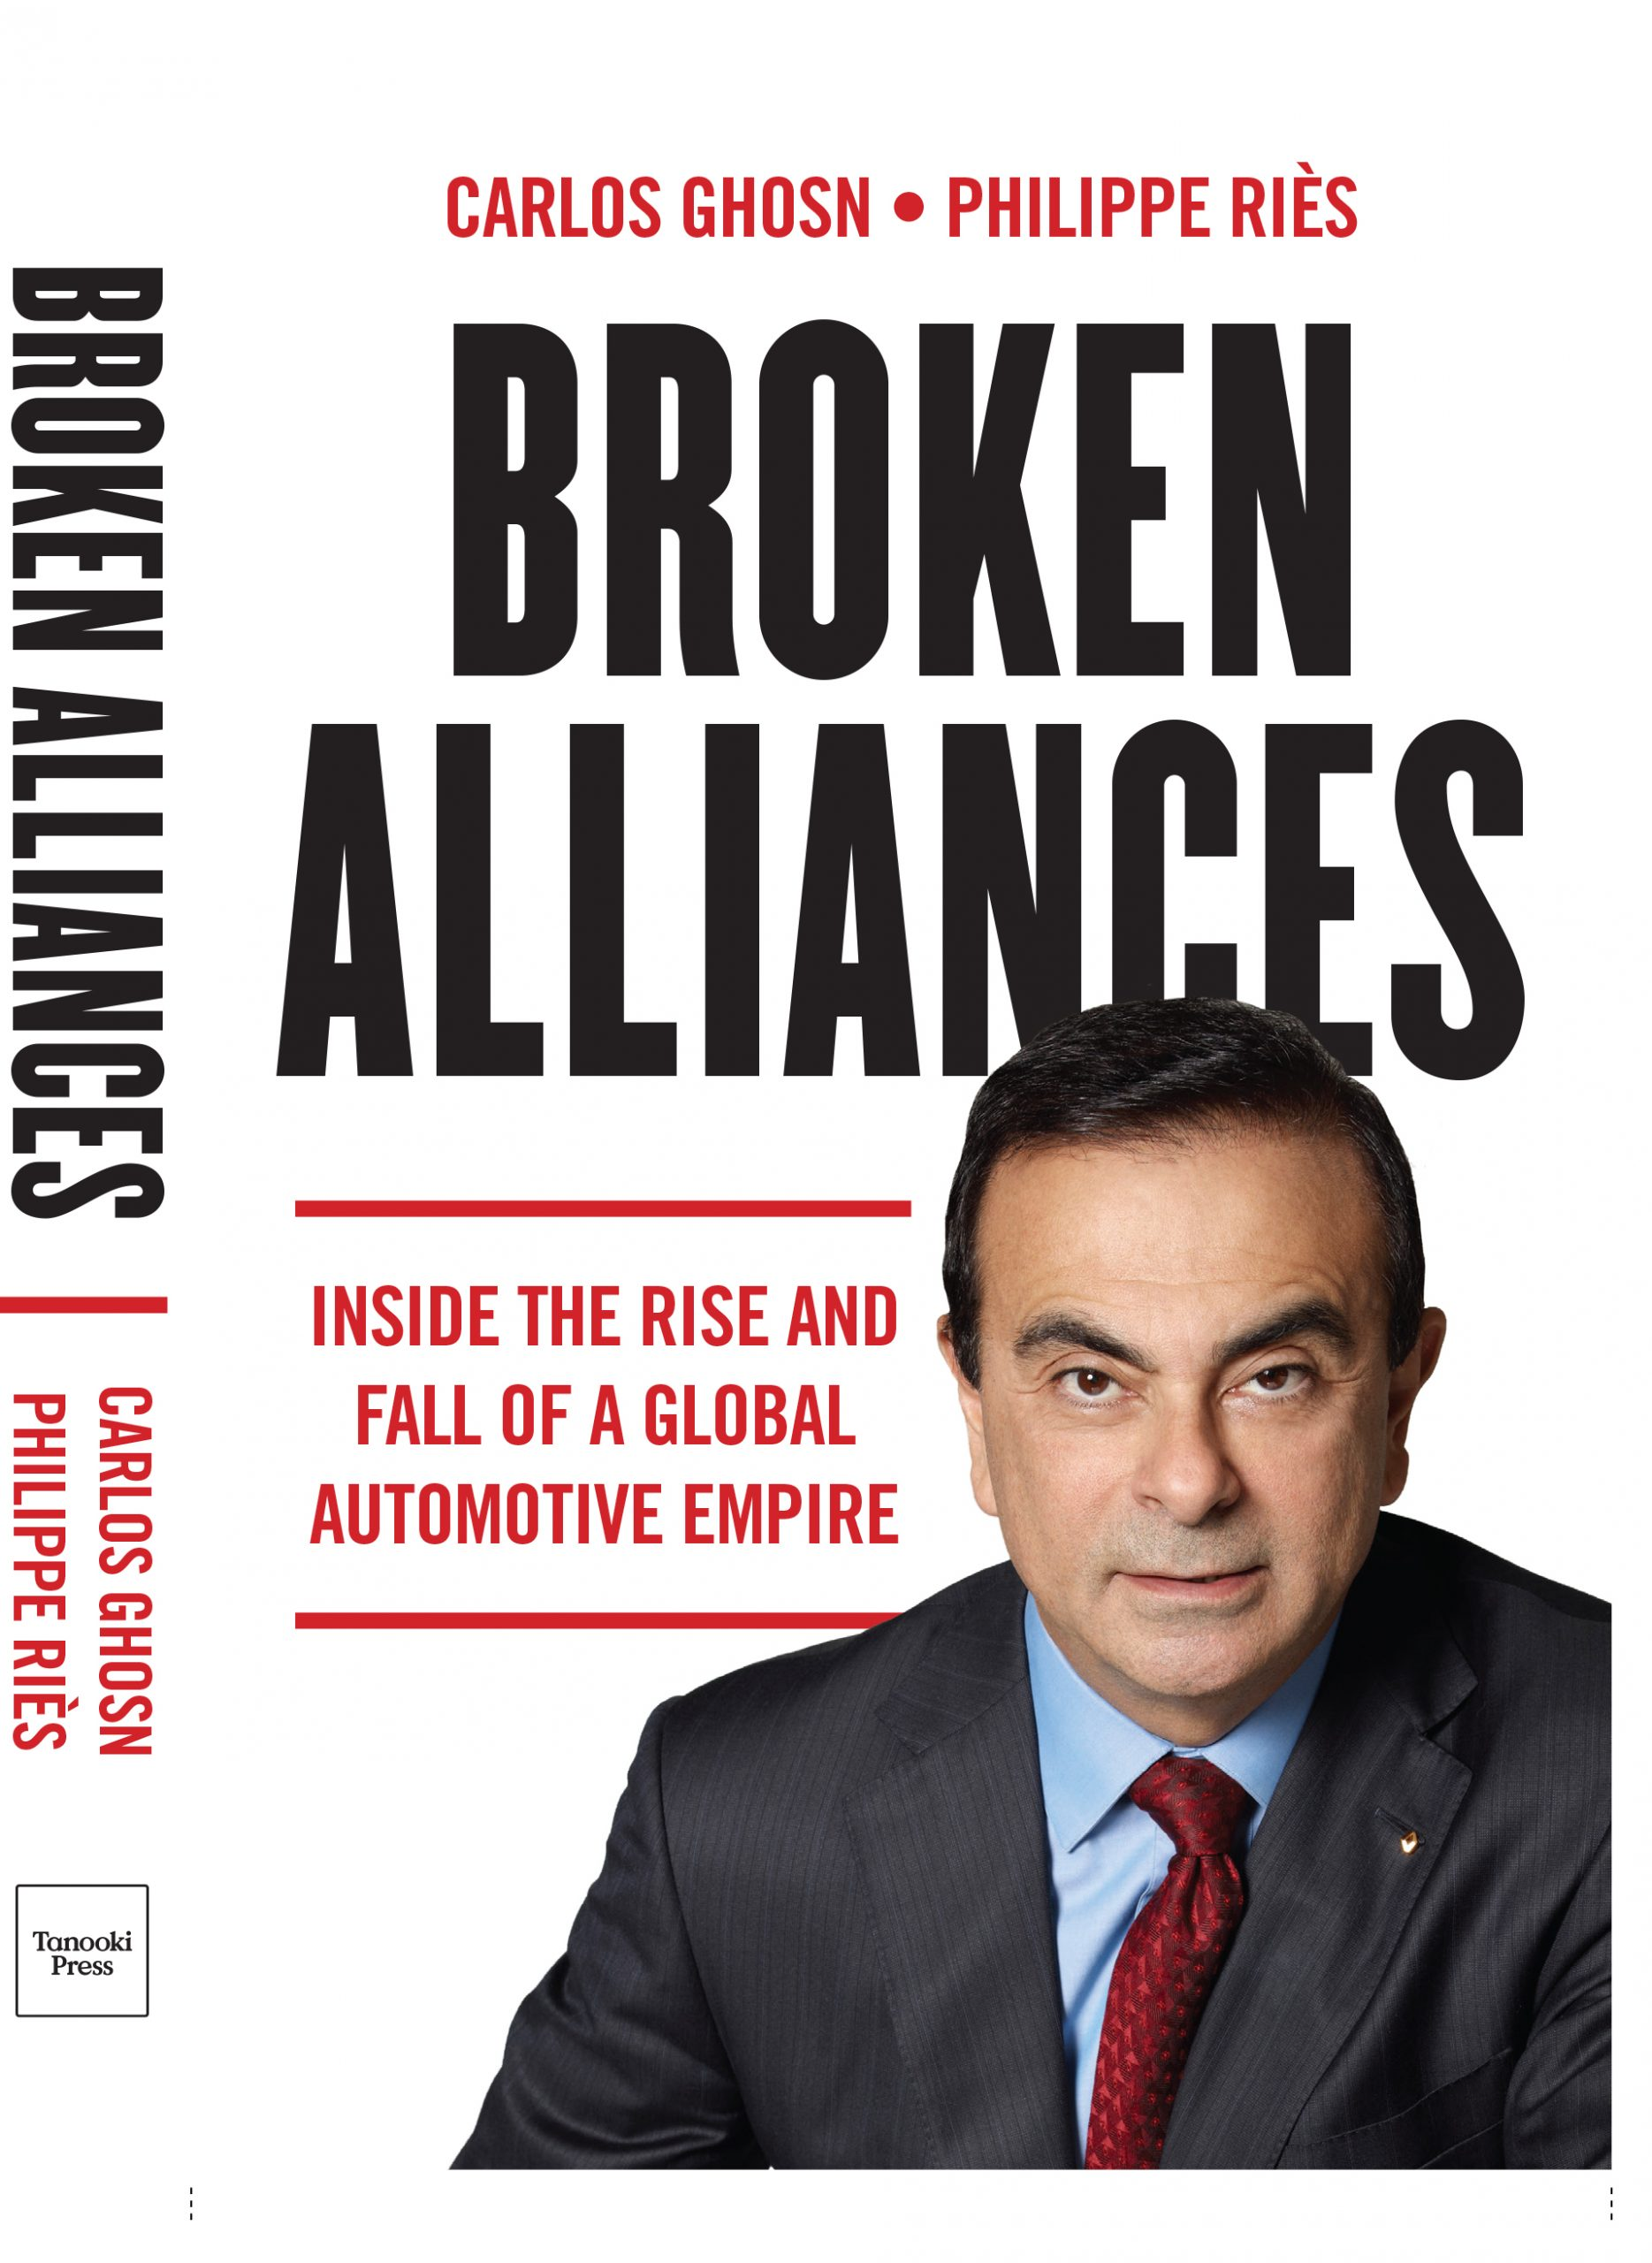 Cover from Broken Alliances book by Carlos Ghosn